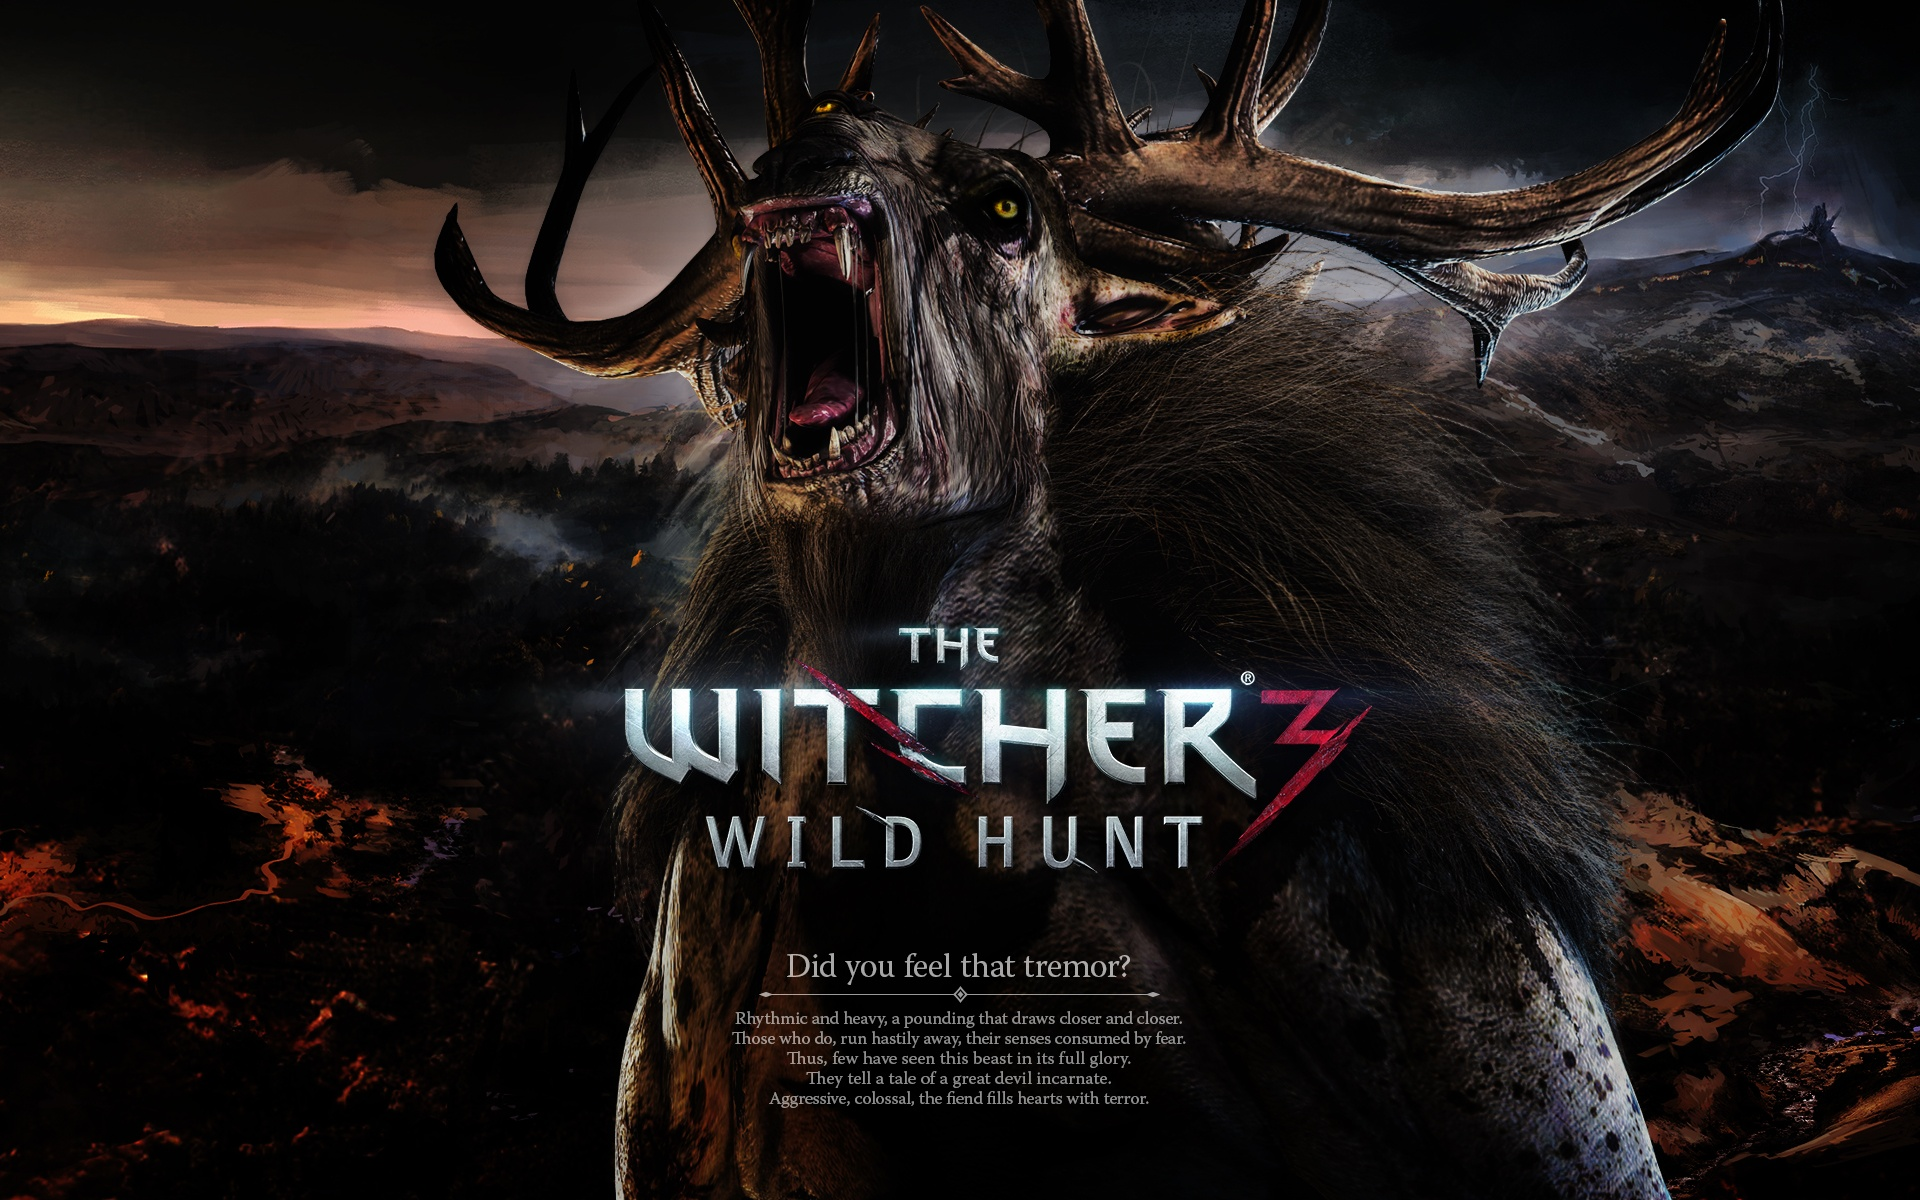 the witcher 3 release